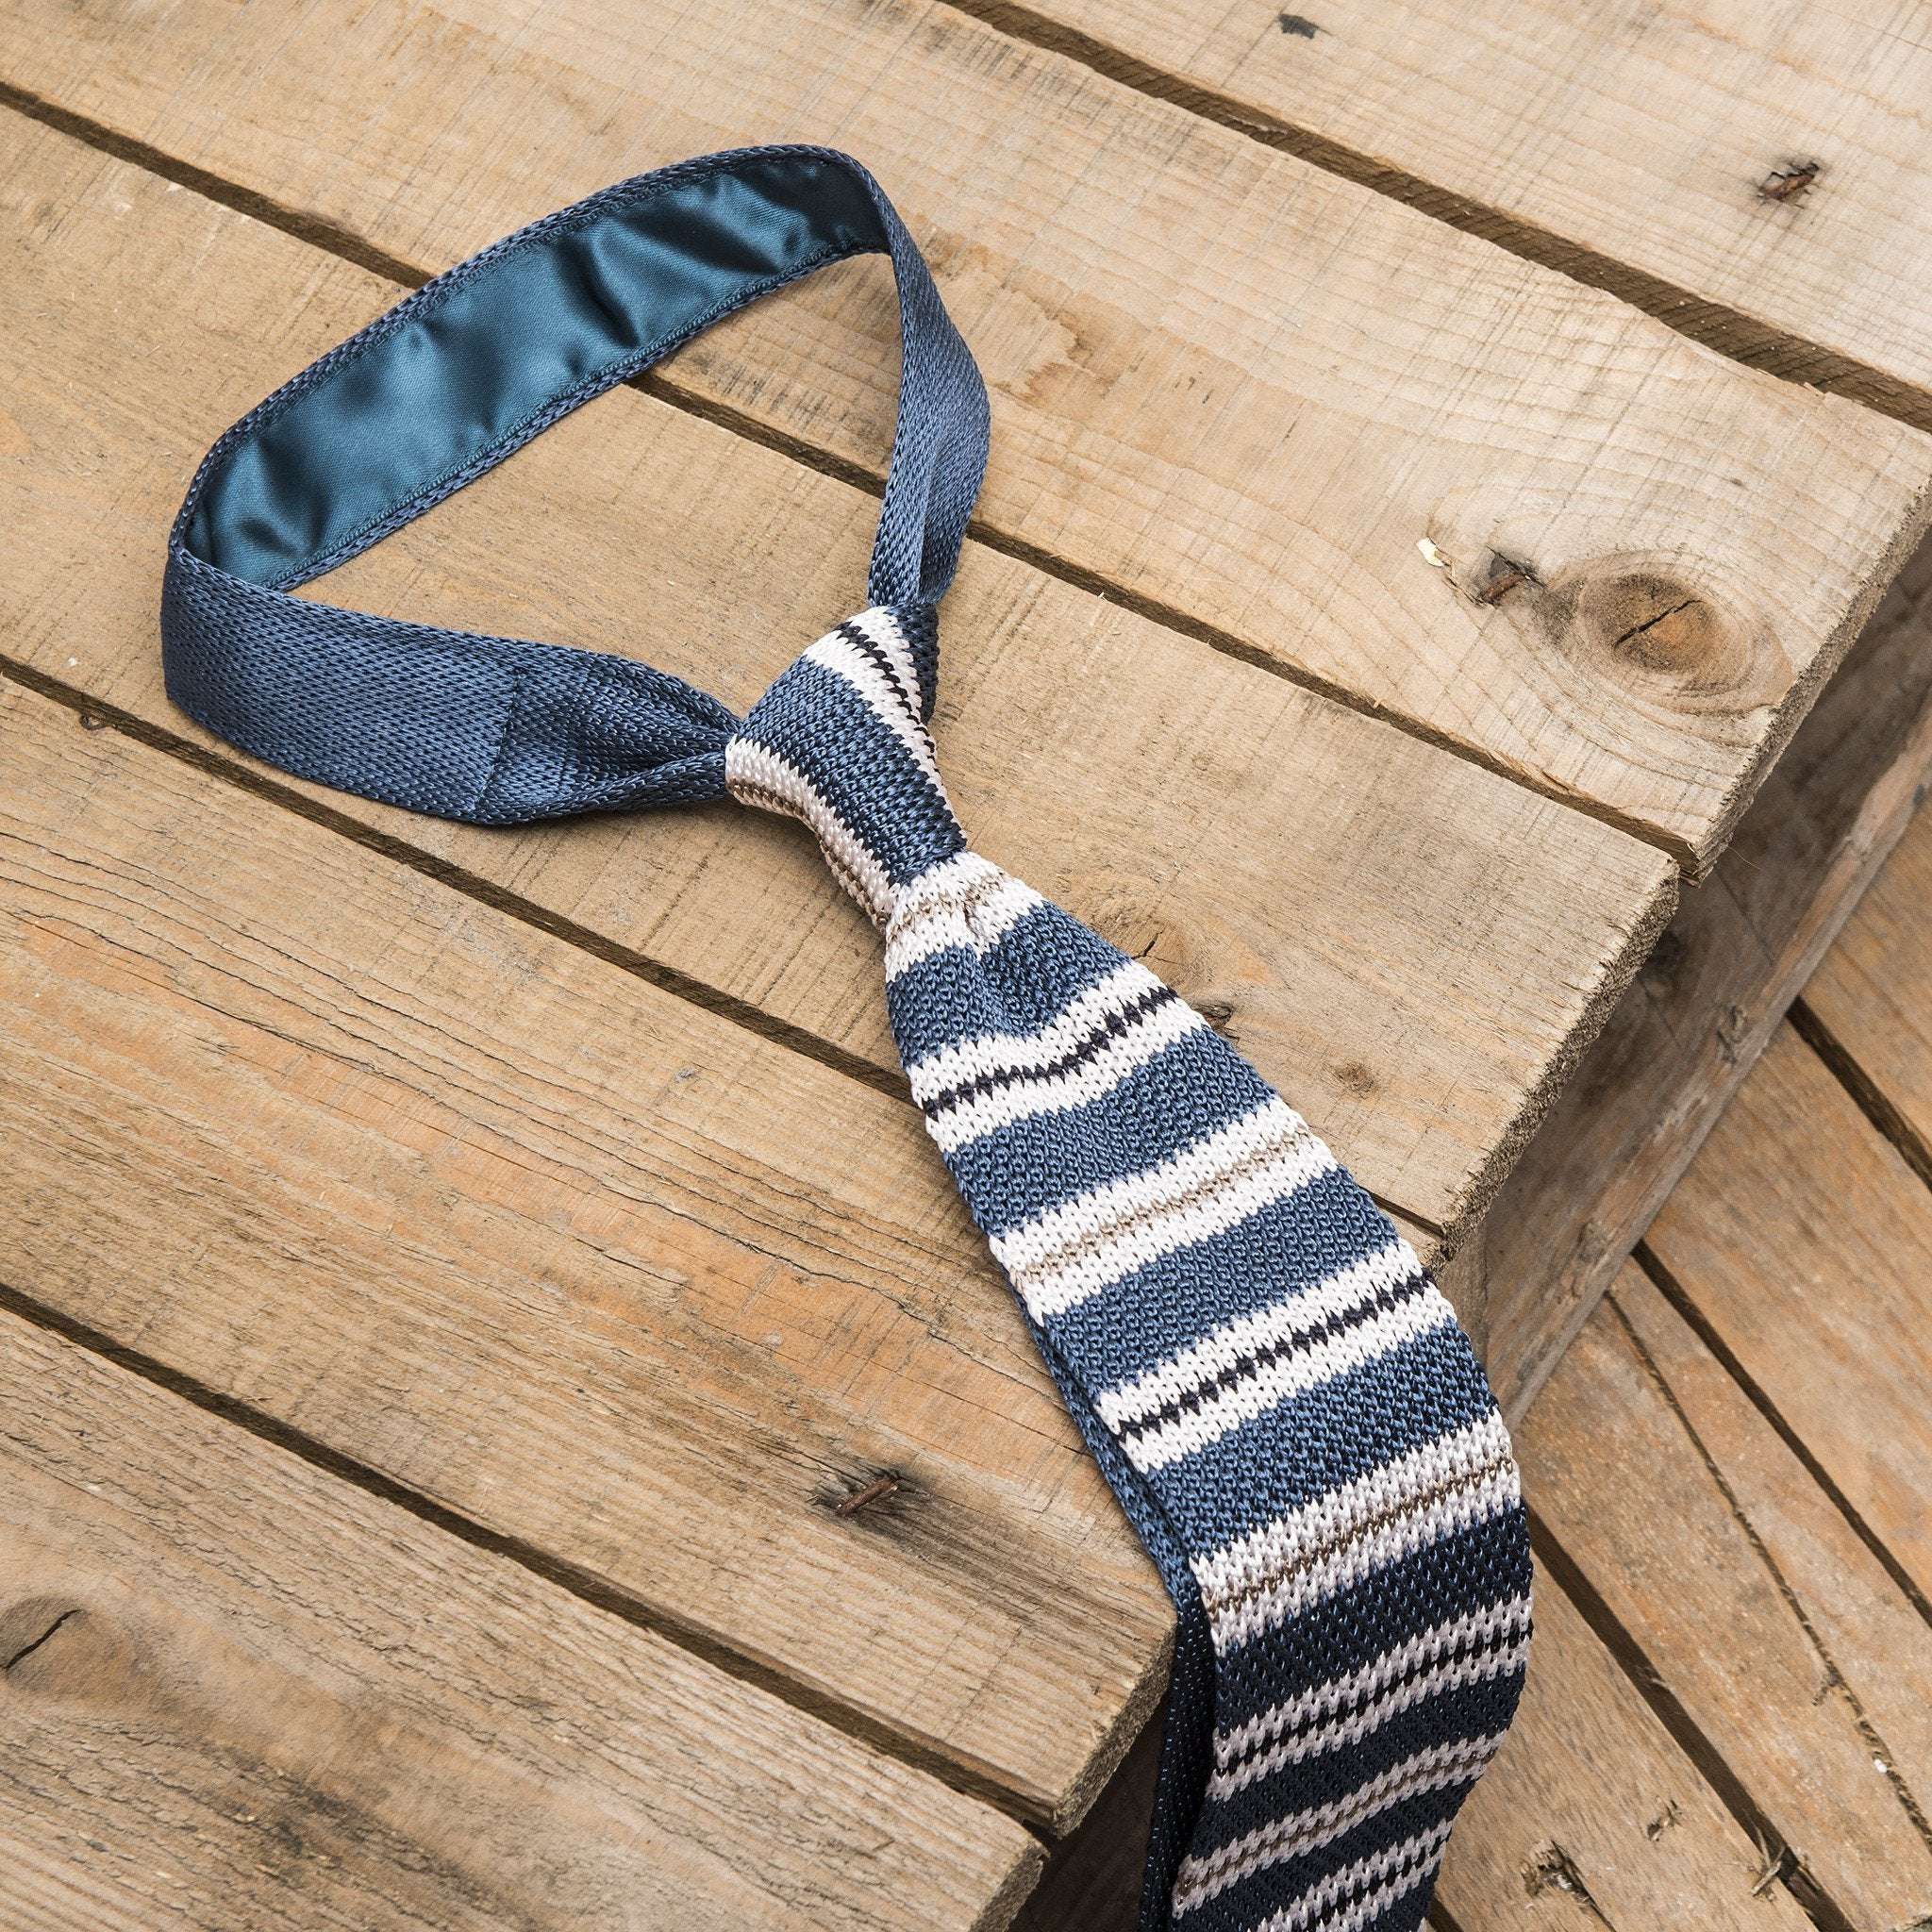 Blue and White Striped Knitted Tie